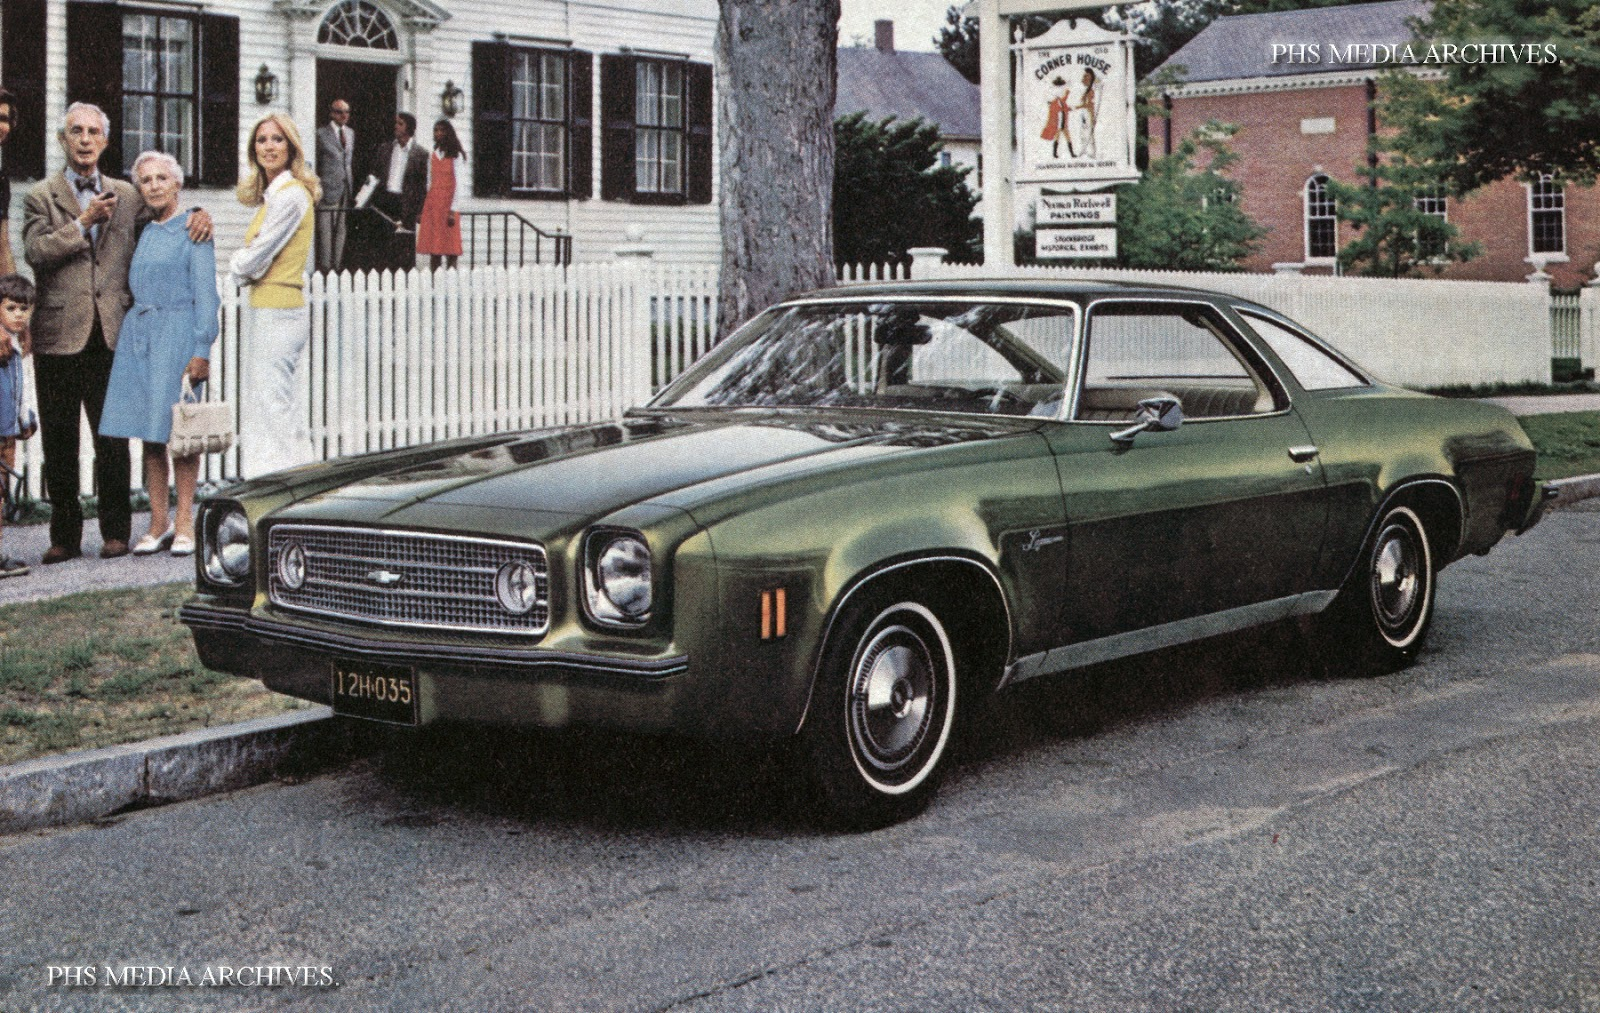 1973 Chevelle SS: A Ghost Muscle Car | phscollectorcarworld